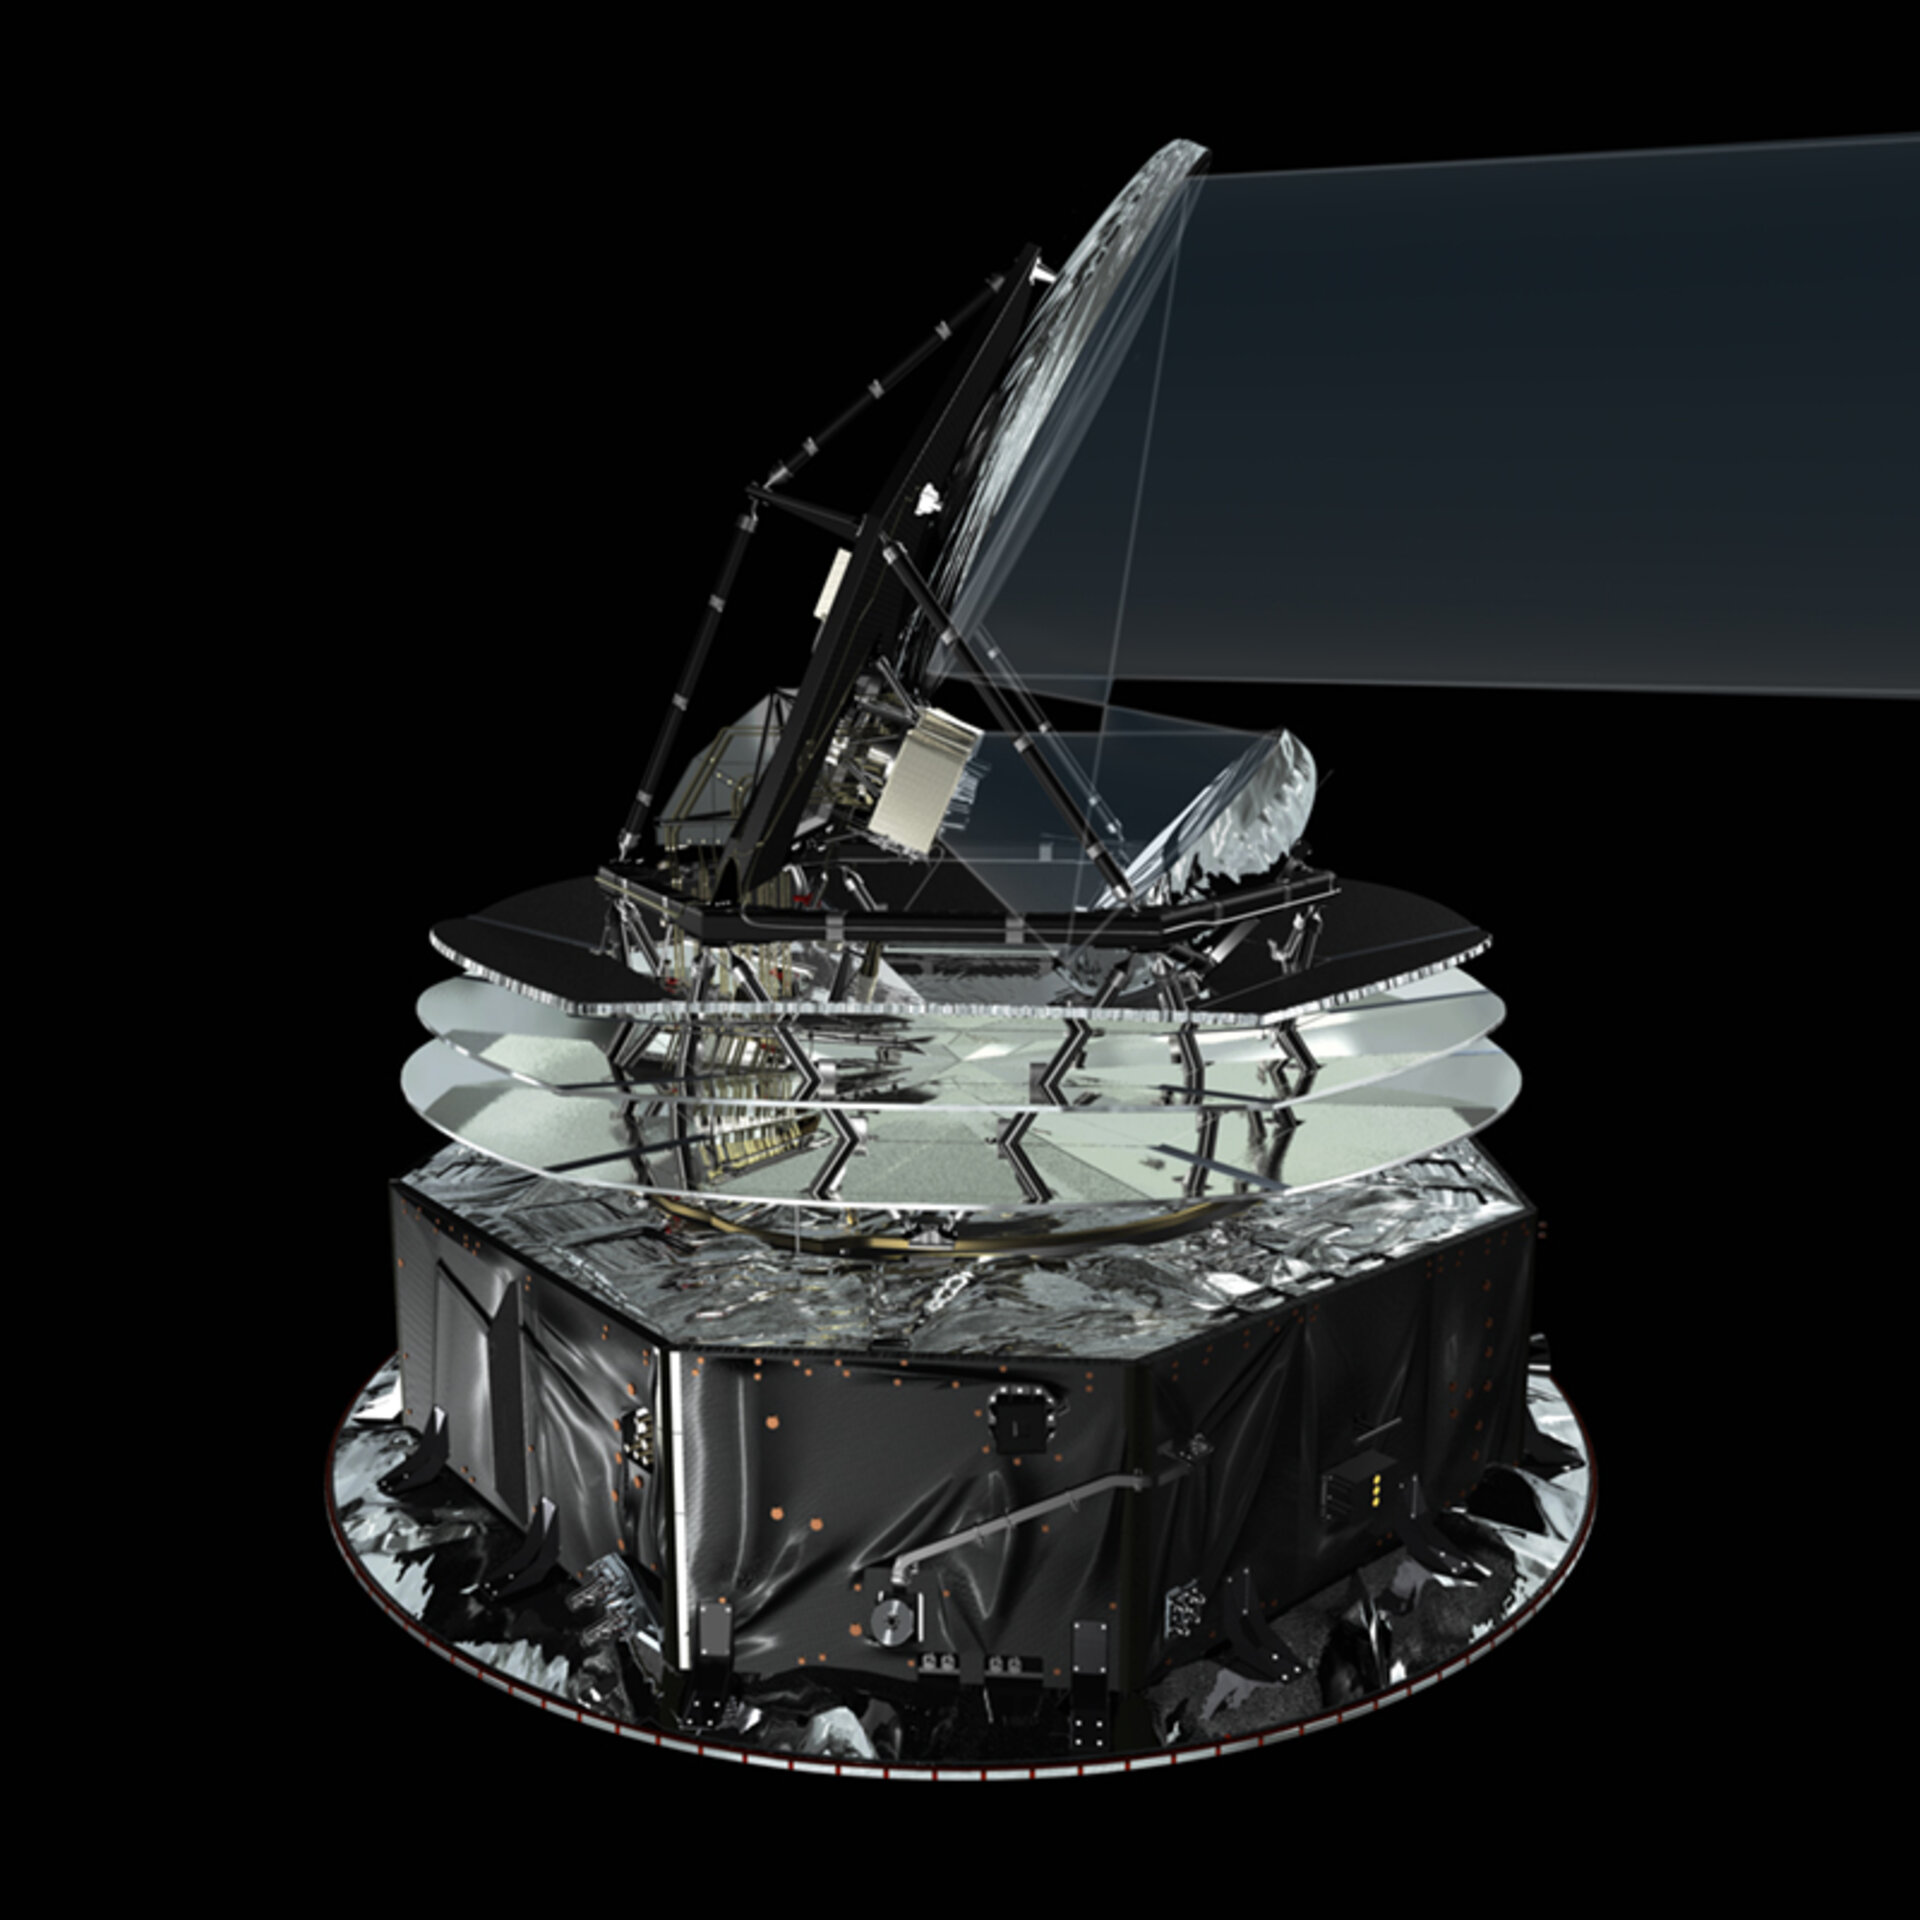 Planck satellite and telescope